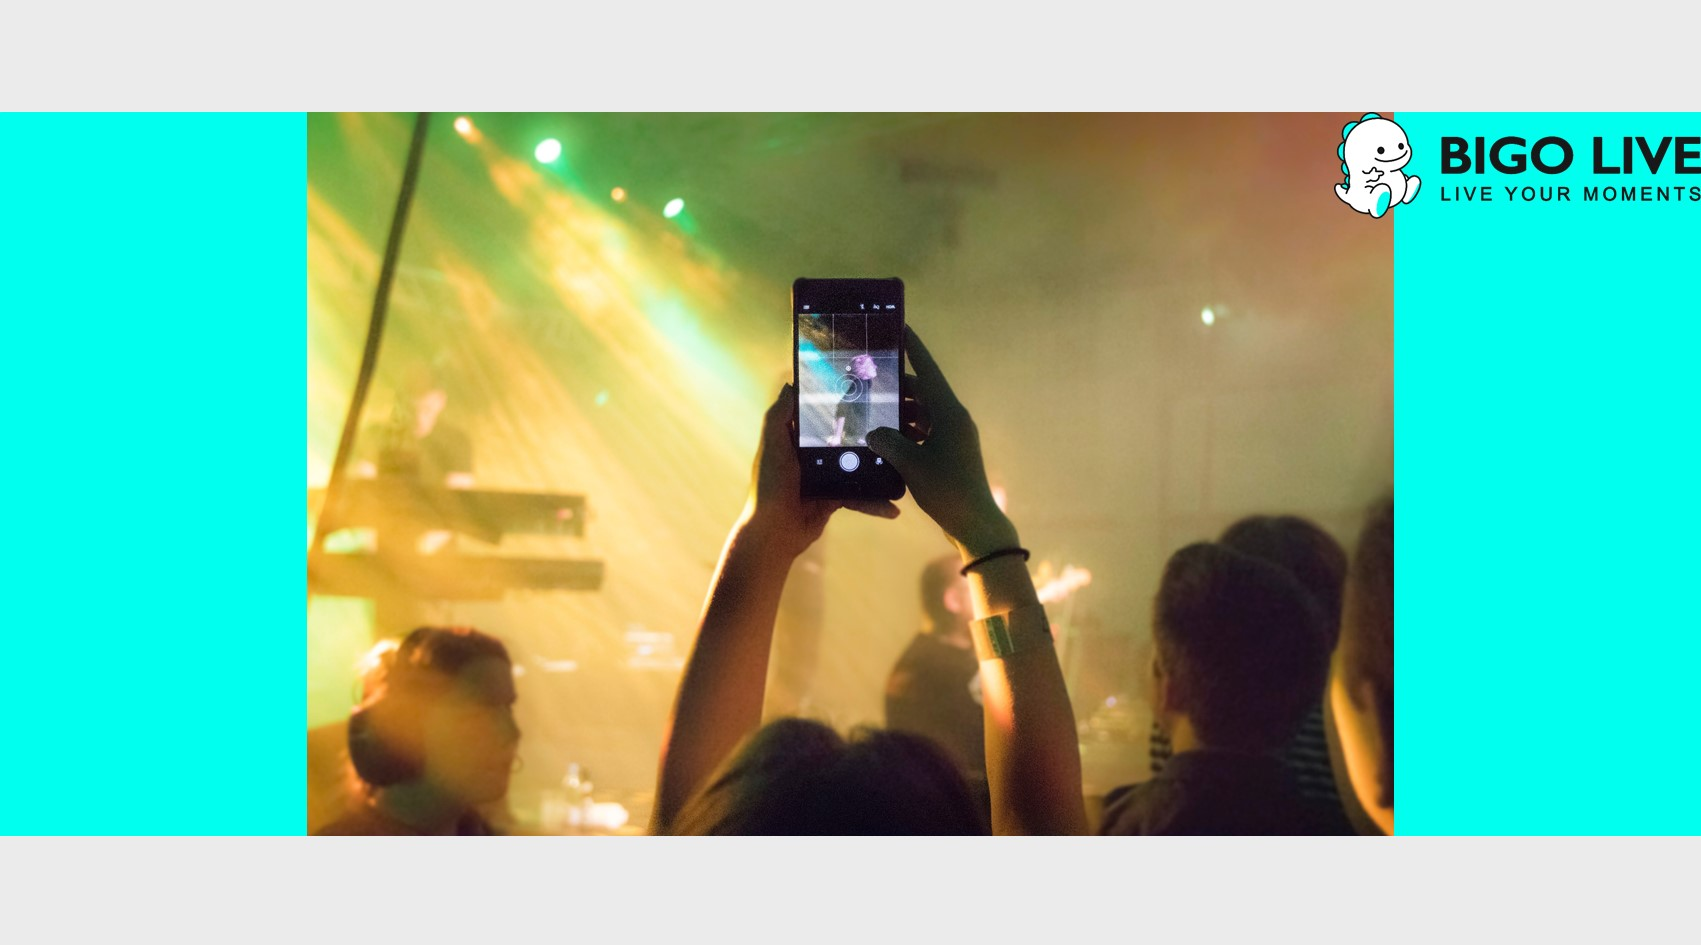 Best Live Video Apps